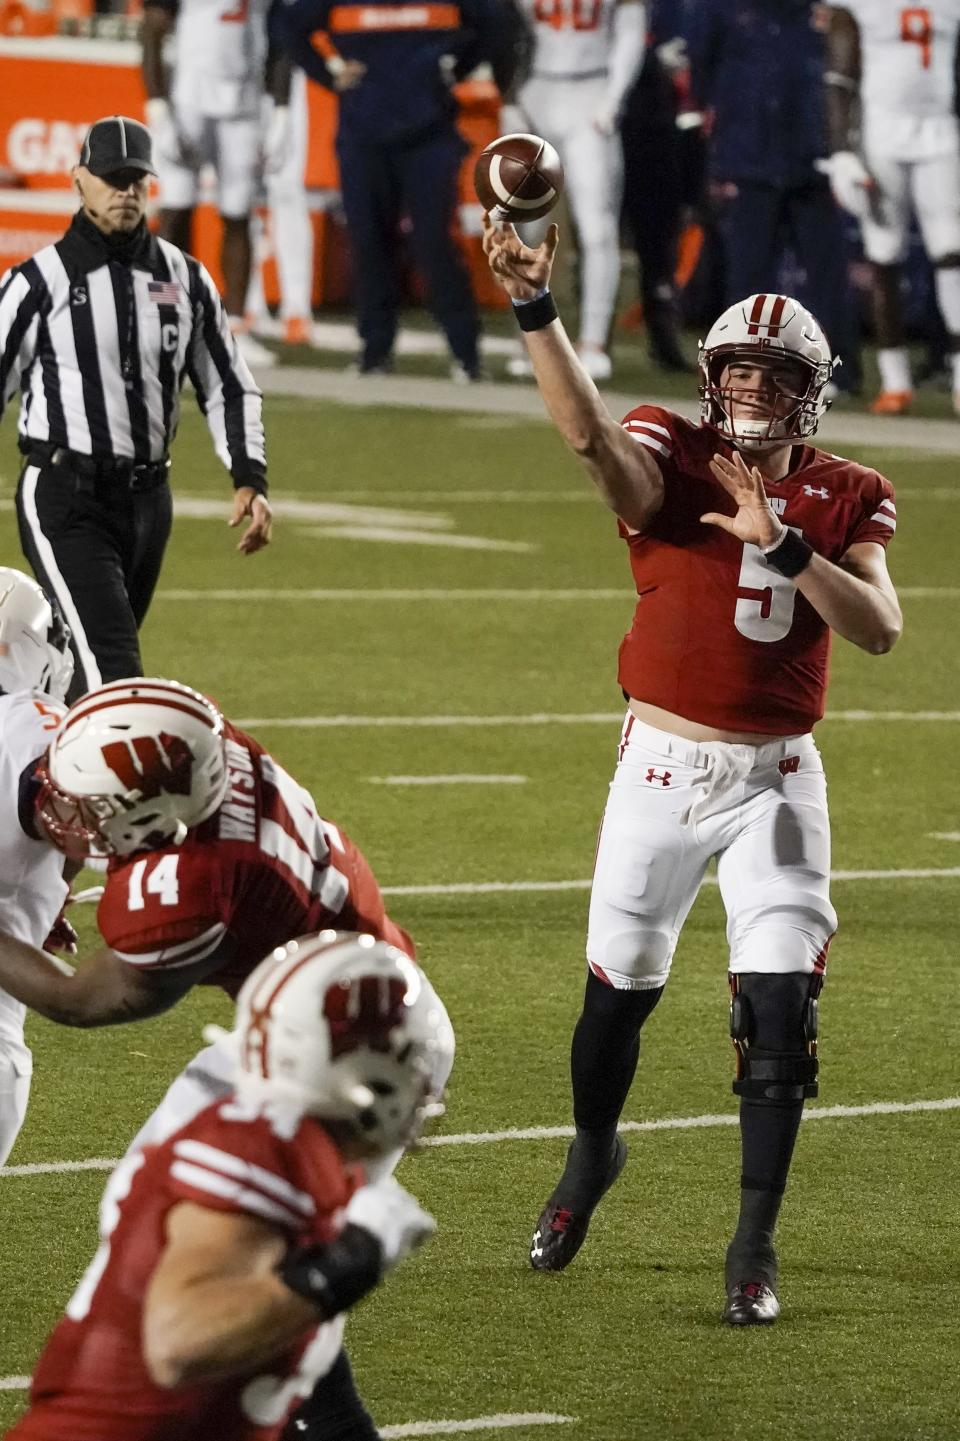 Wisconsin quarterback Graham Mertze throws a touchdown pass to Wisconsin's Mason Stokke during the first half of an NCAA college football game against Illinois Friday, Oct. 23, 2020, in Madison, Wis. (AP Photo/Morry Gash)